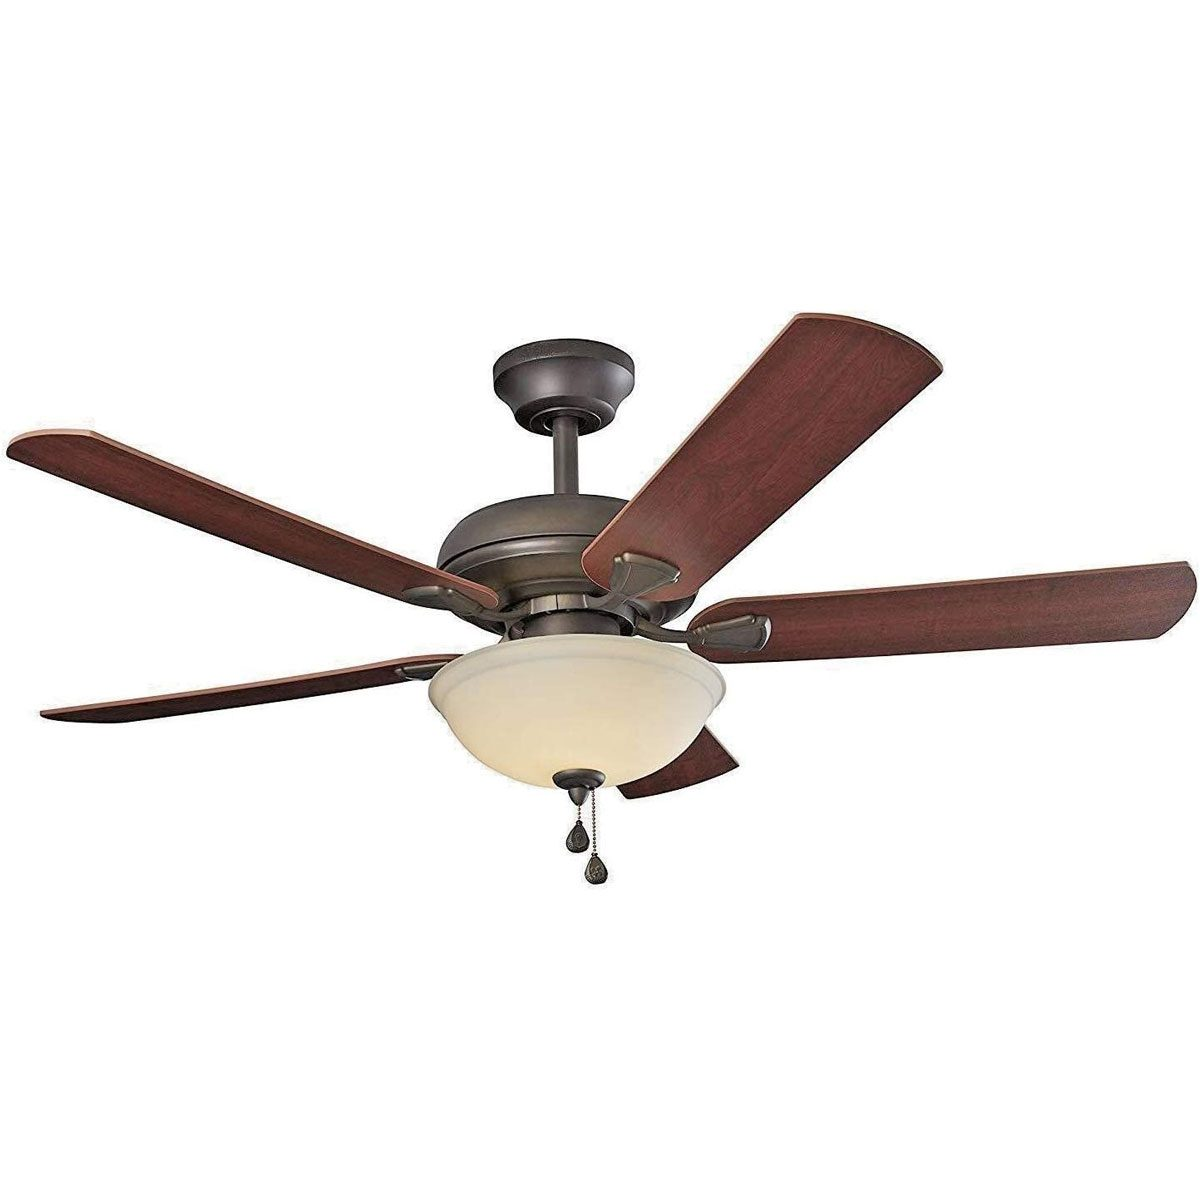 Ceiling fan with a light